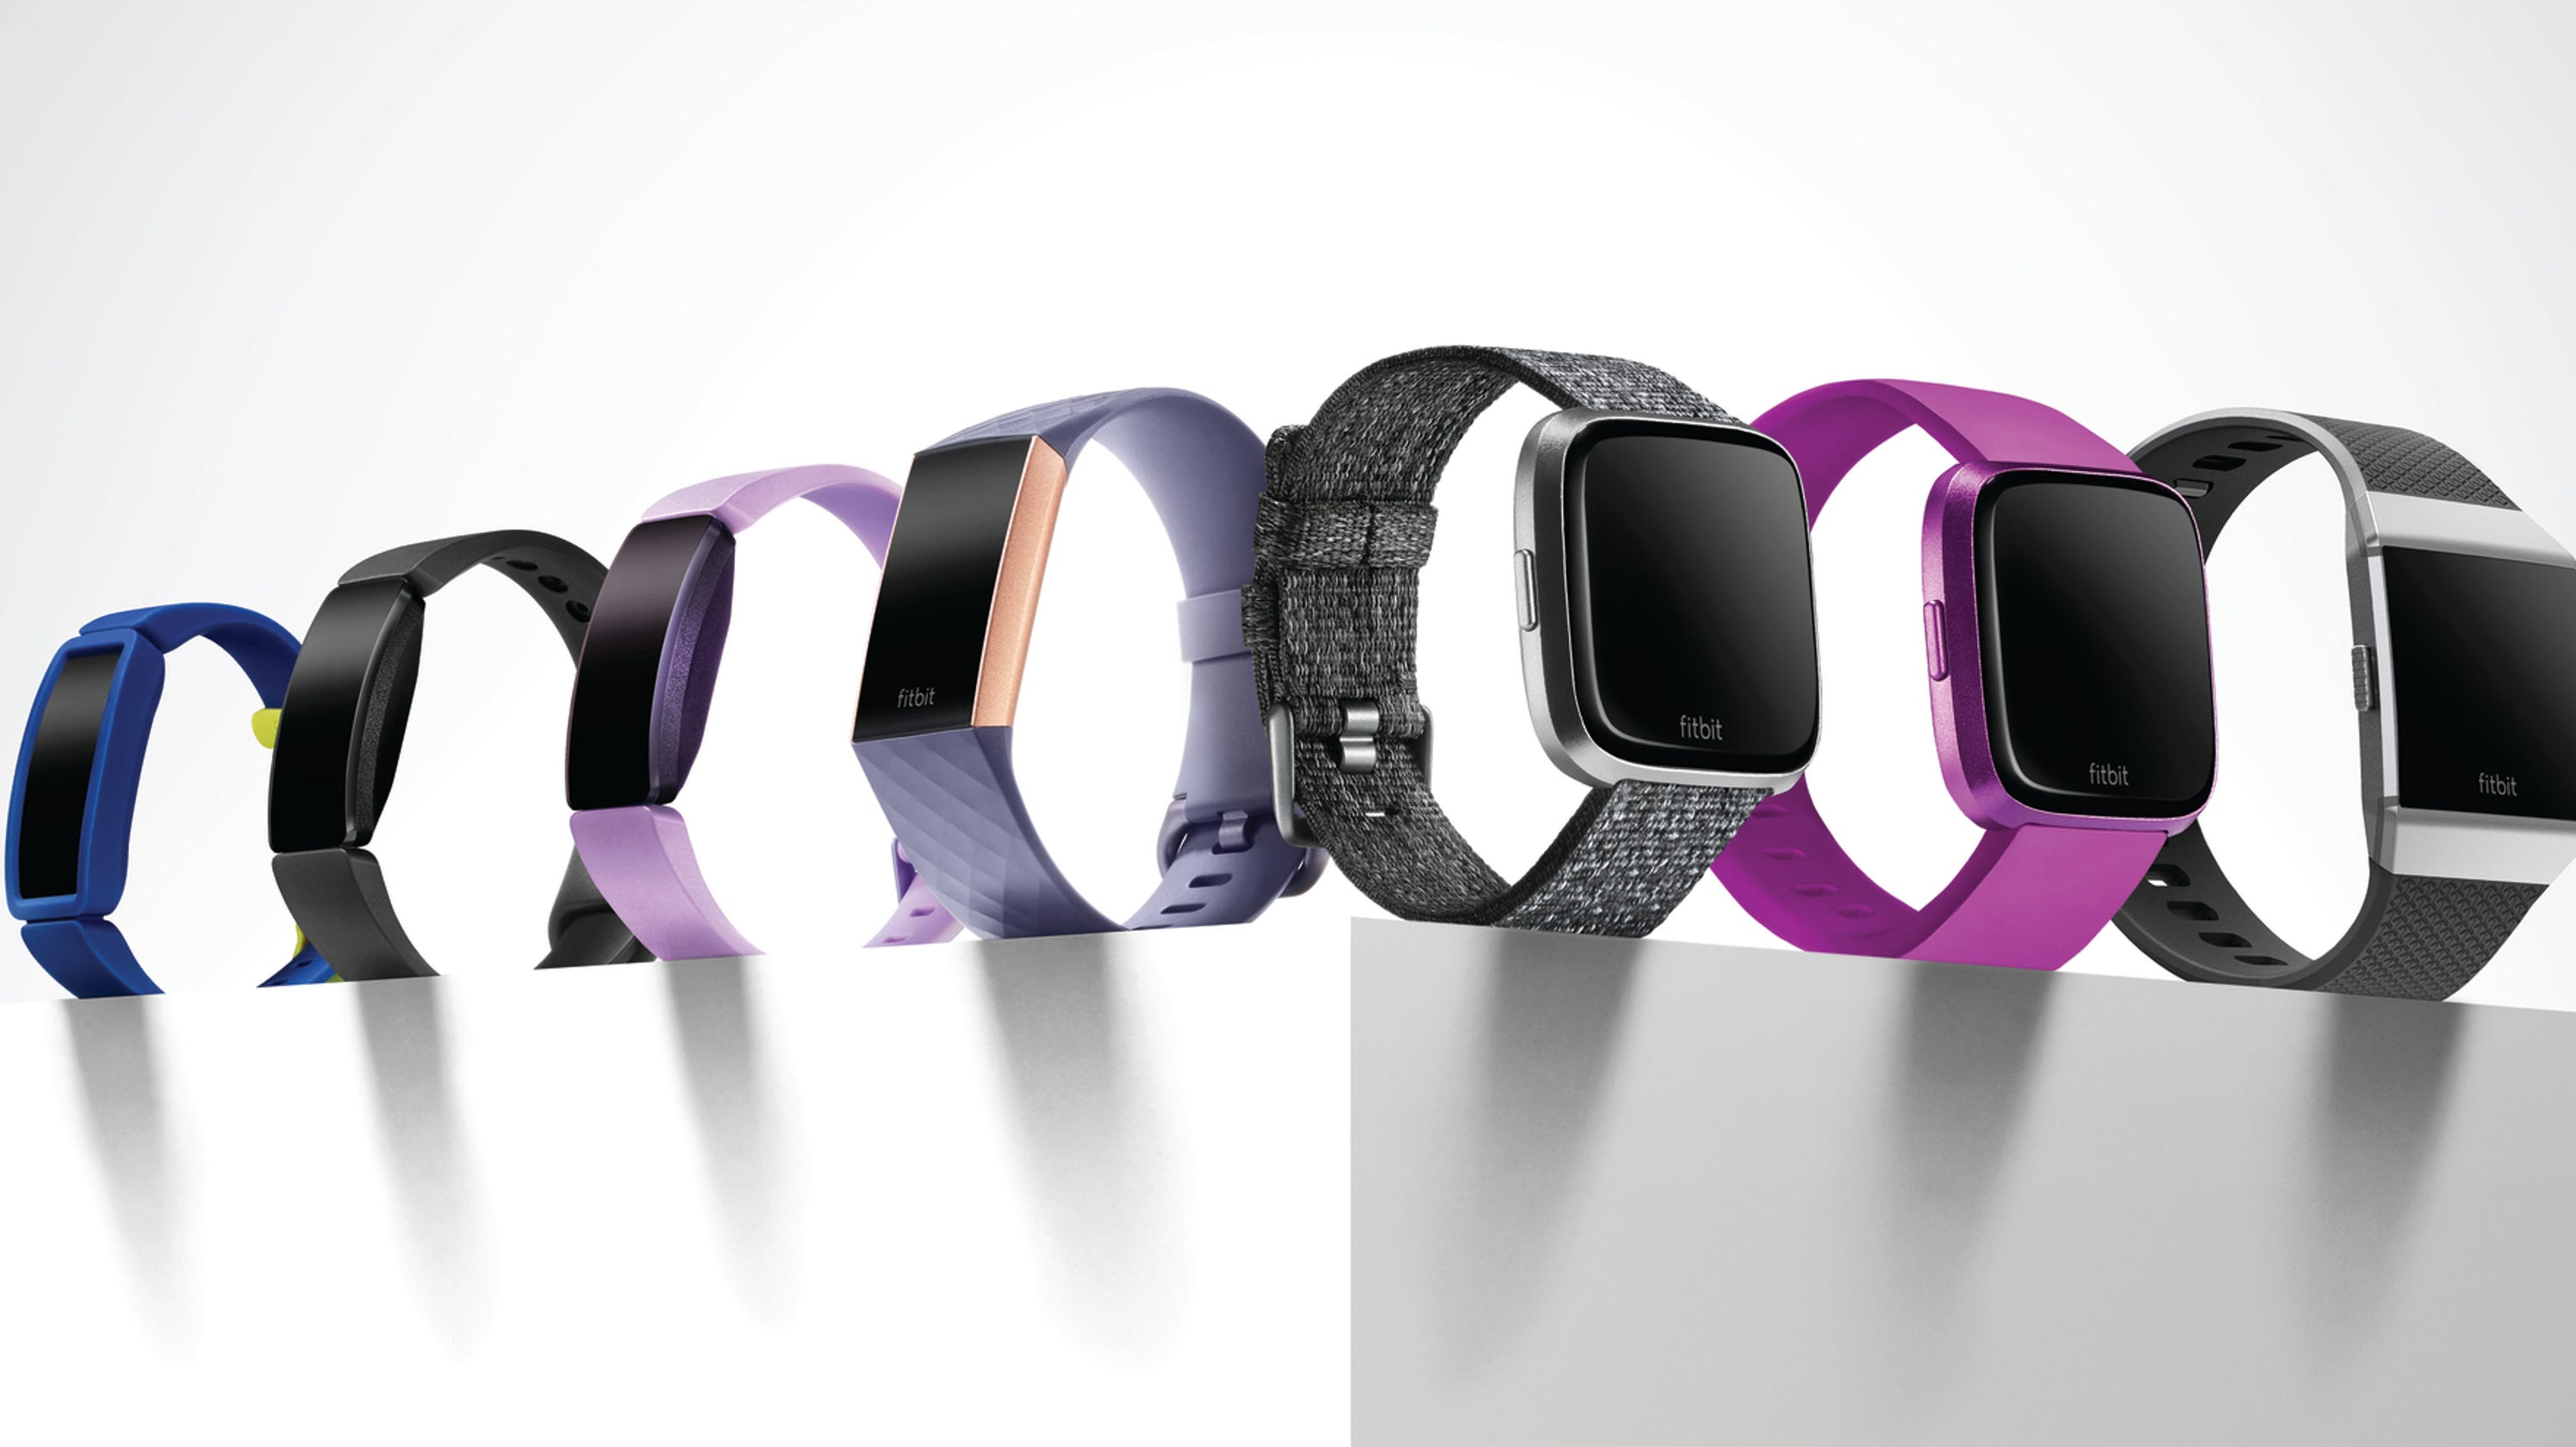 Fitbit launches 4 new devices: Versa Lite, Inspire, Inspire